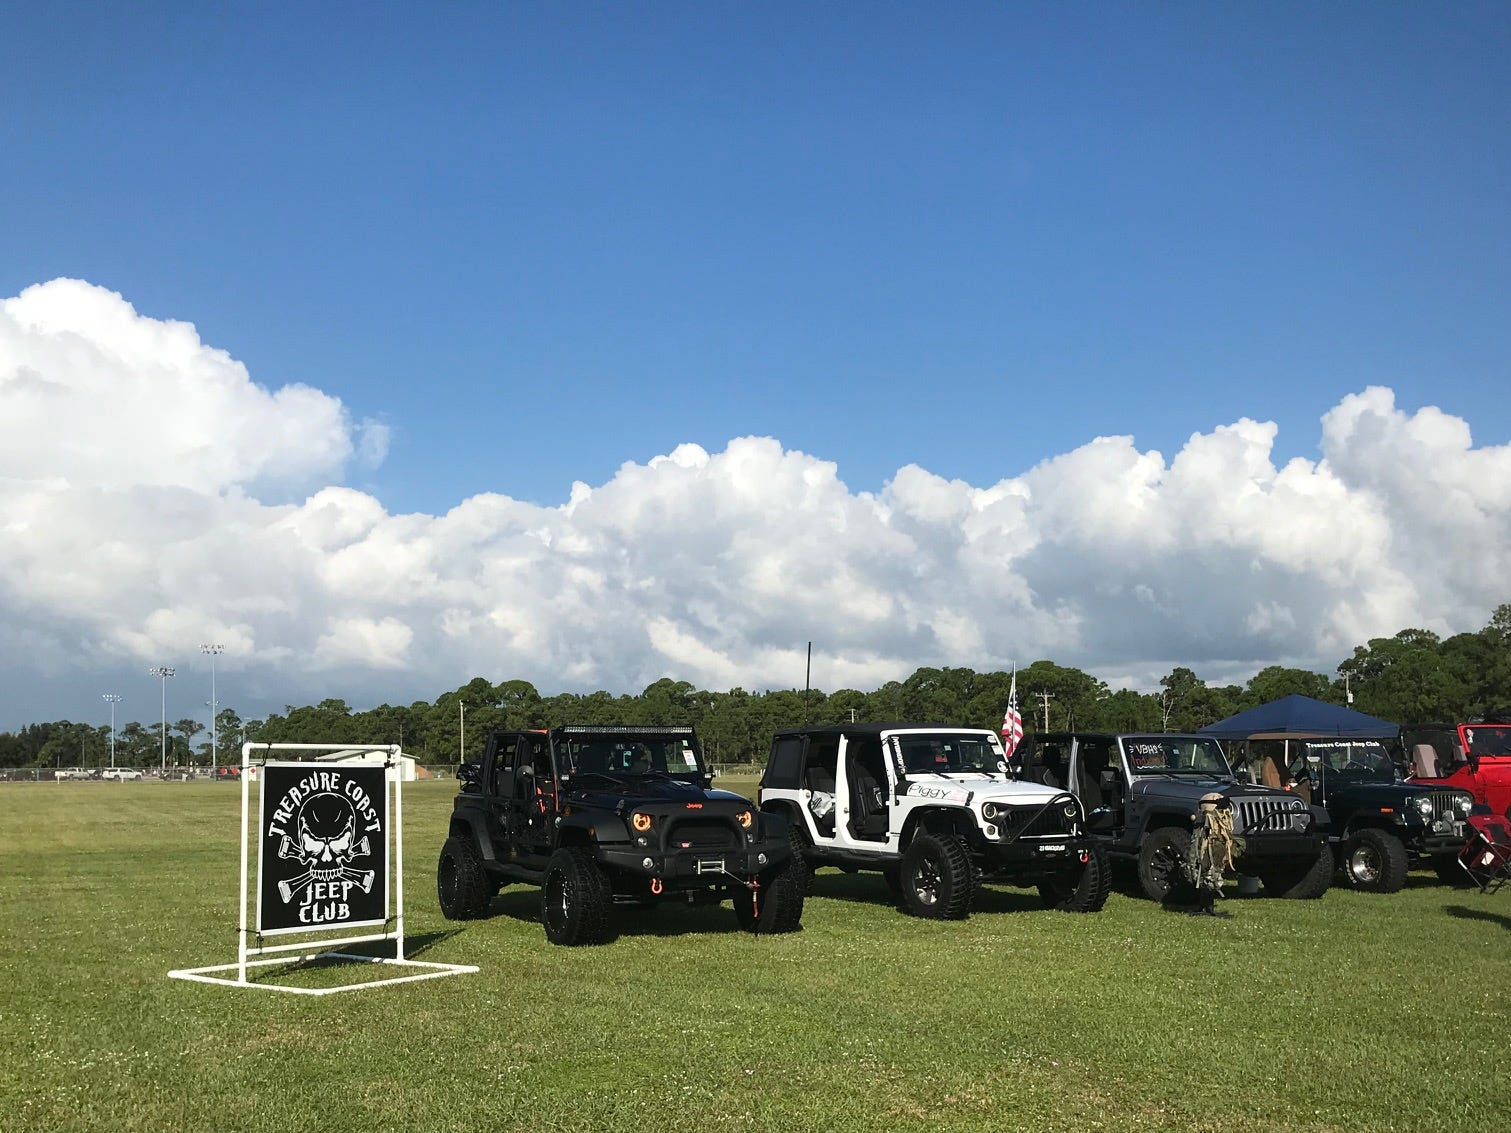 The Jeep Club was also on hand.